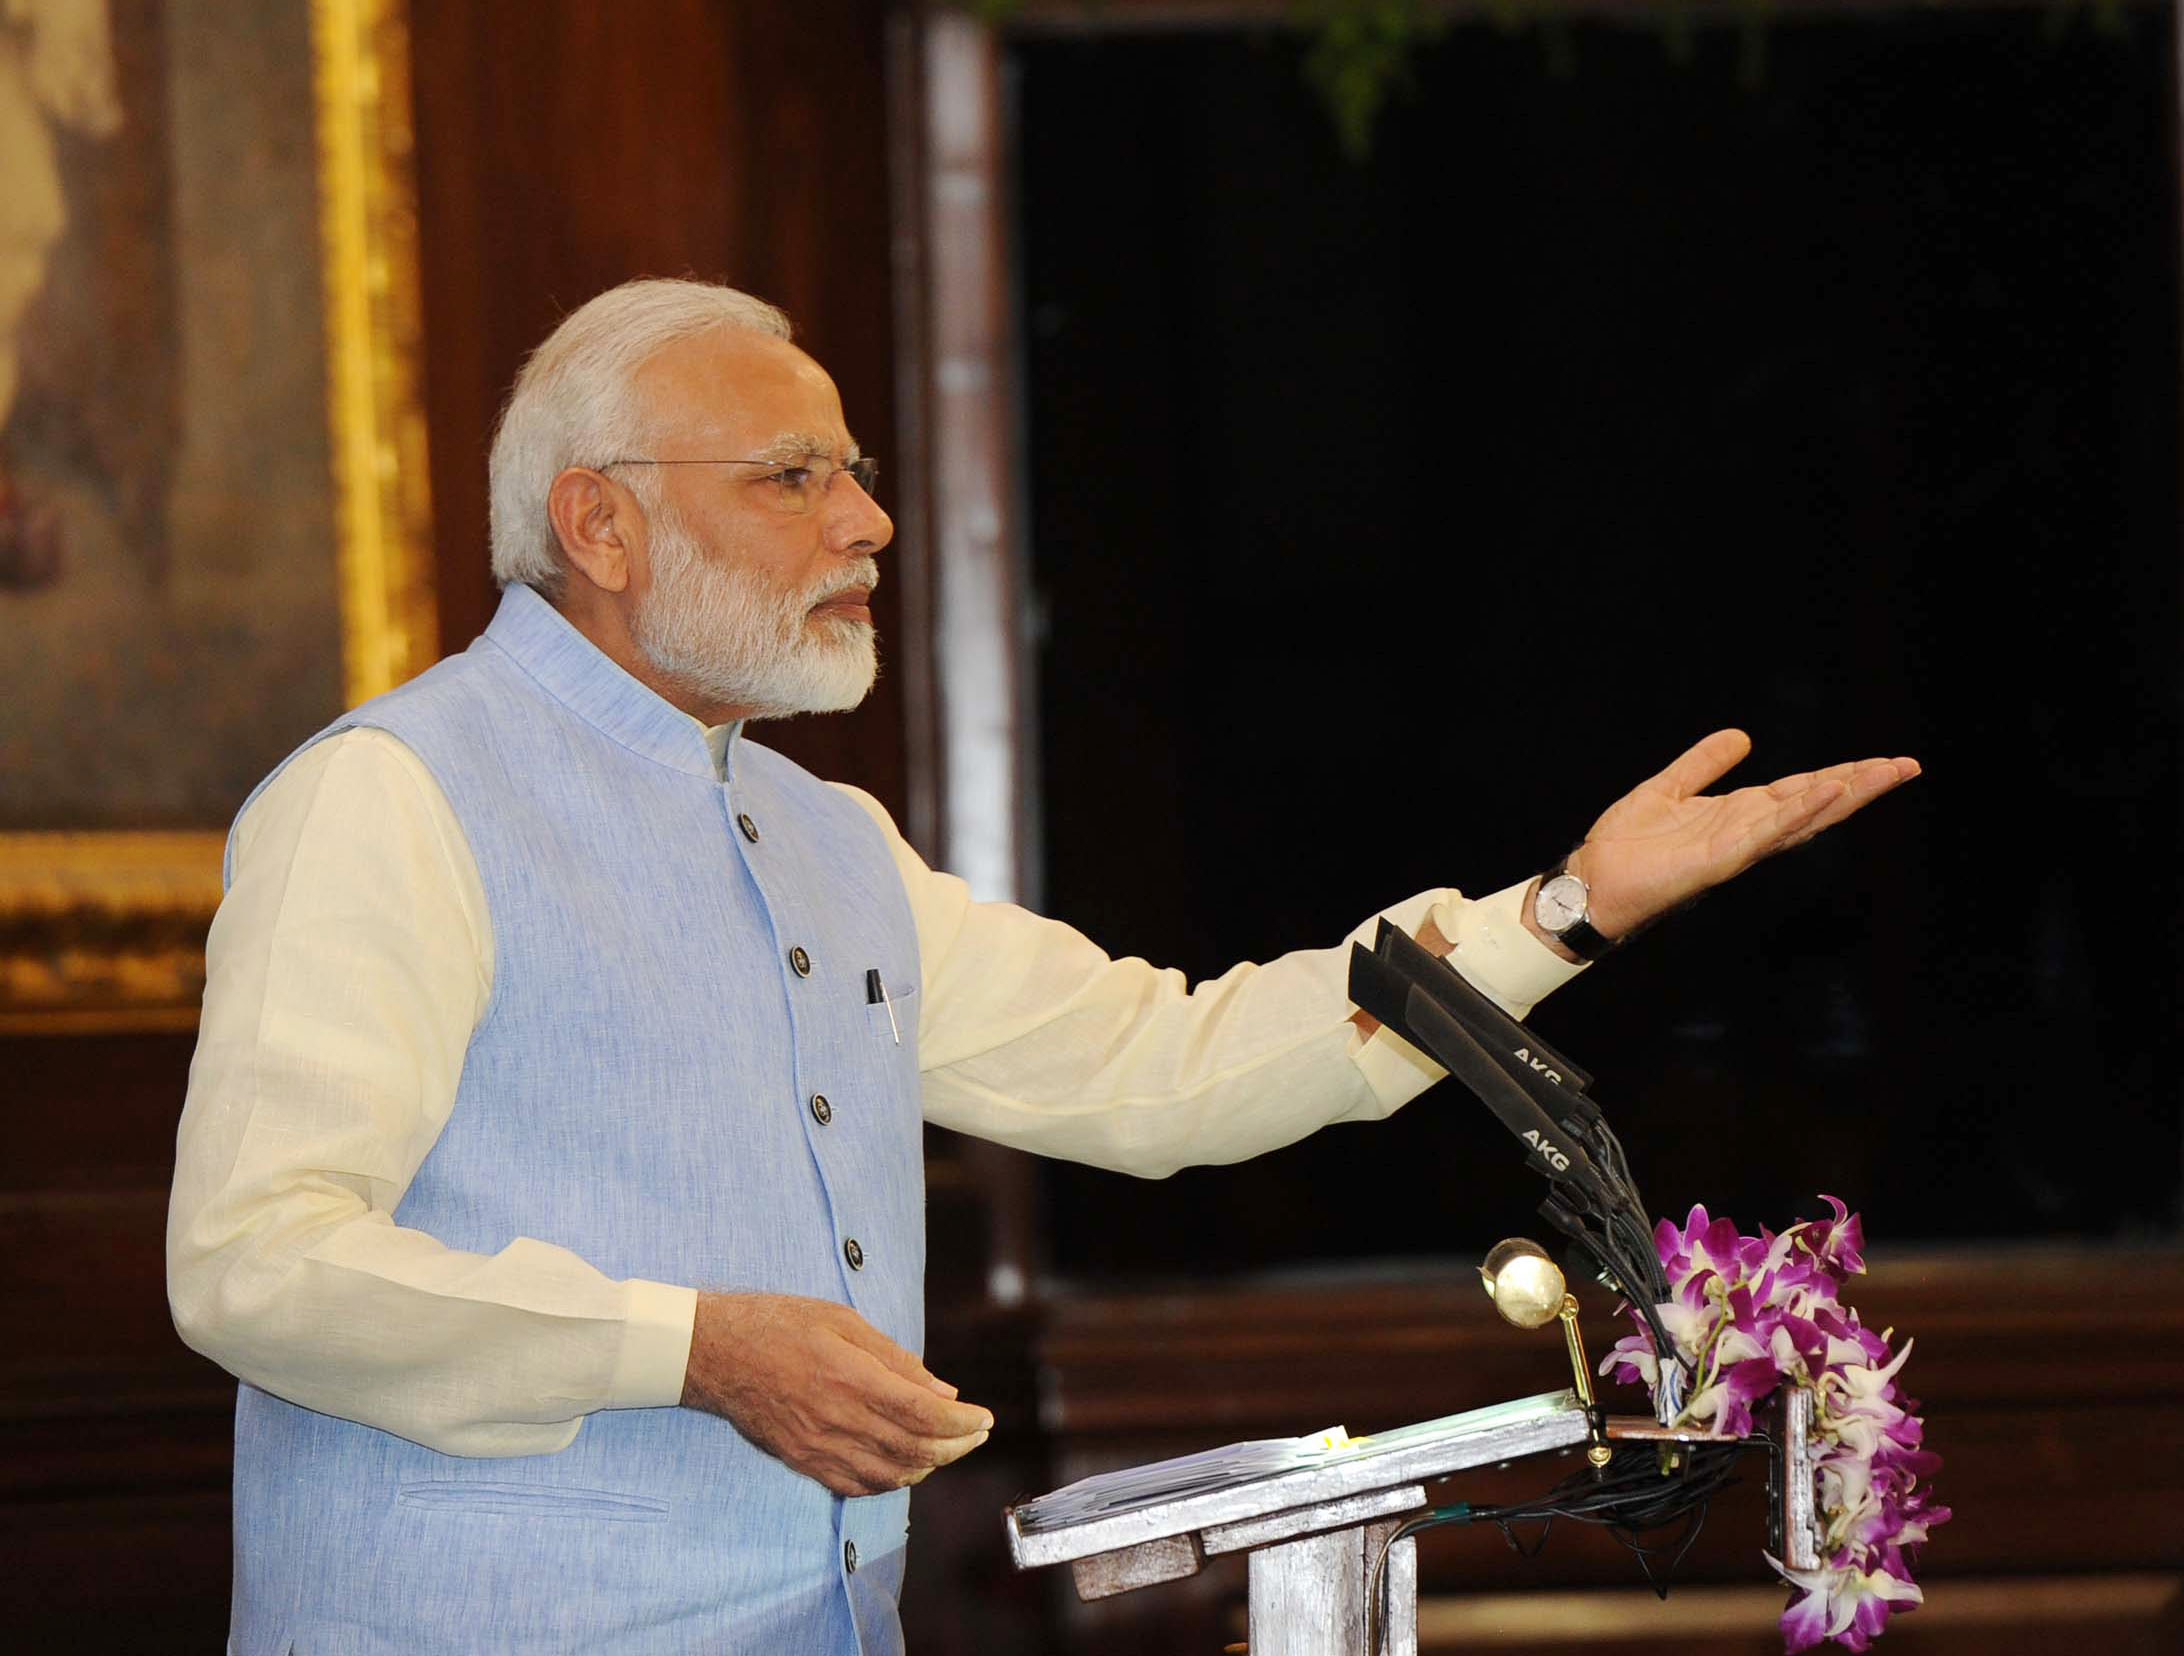 The Prime Minister, Shri Narendra Modi addressing at the ceremony to launch the Goods & Service Tax (GST), in Central Hall of Parliament, in New Delhi on June 30, 2017.